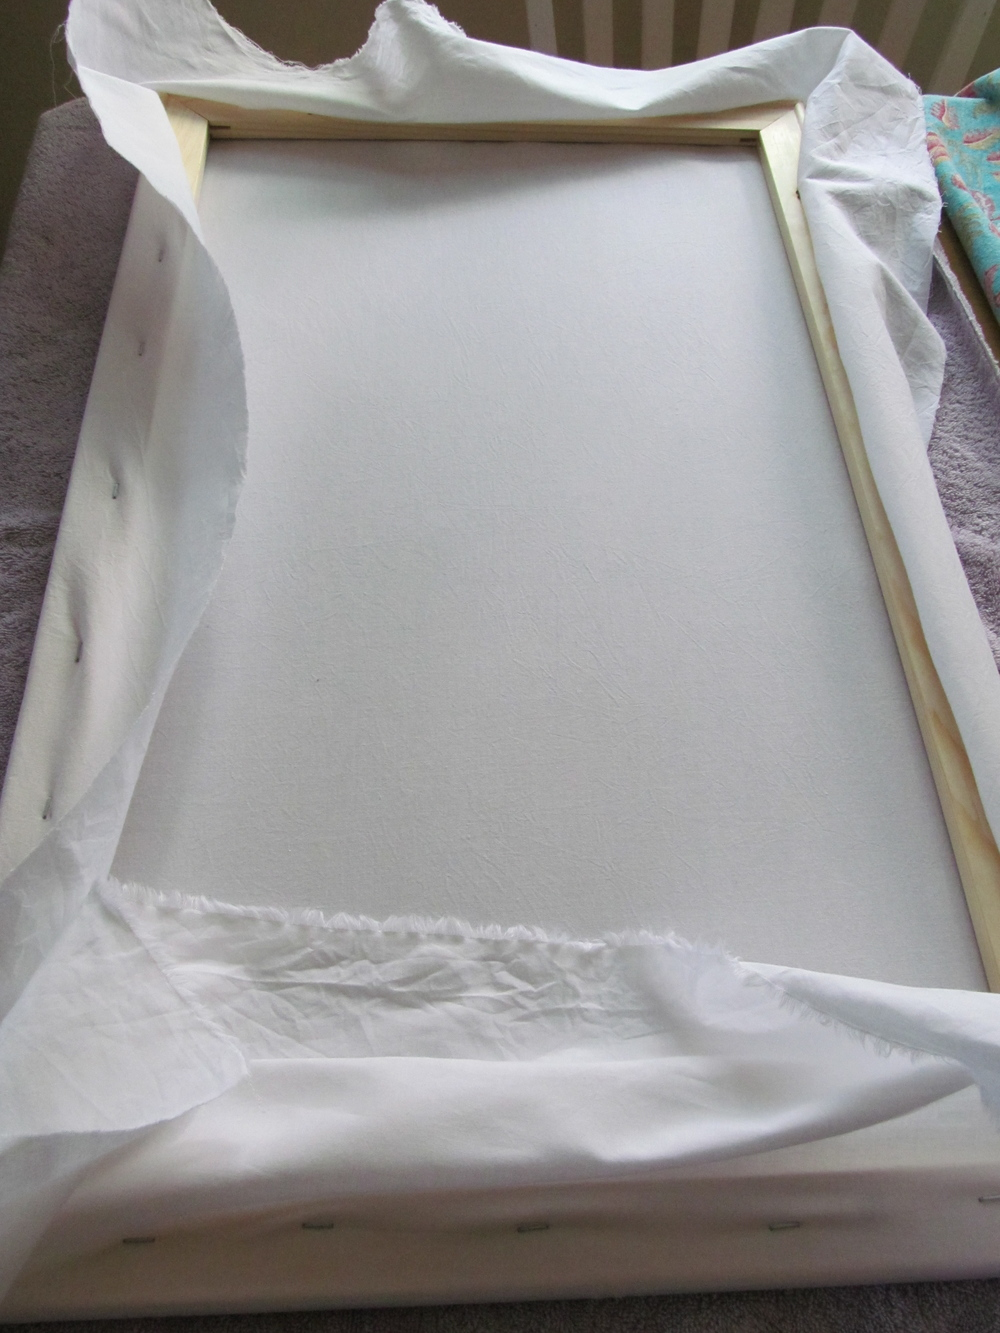 First, I stretch white muslin over the wooden stretcher bars.